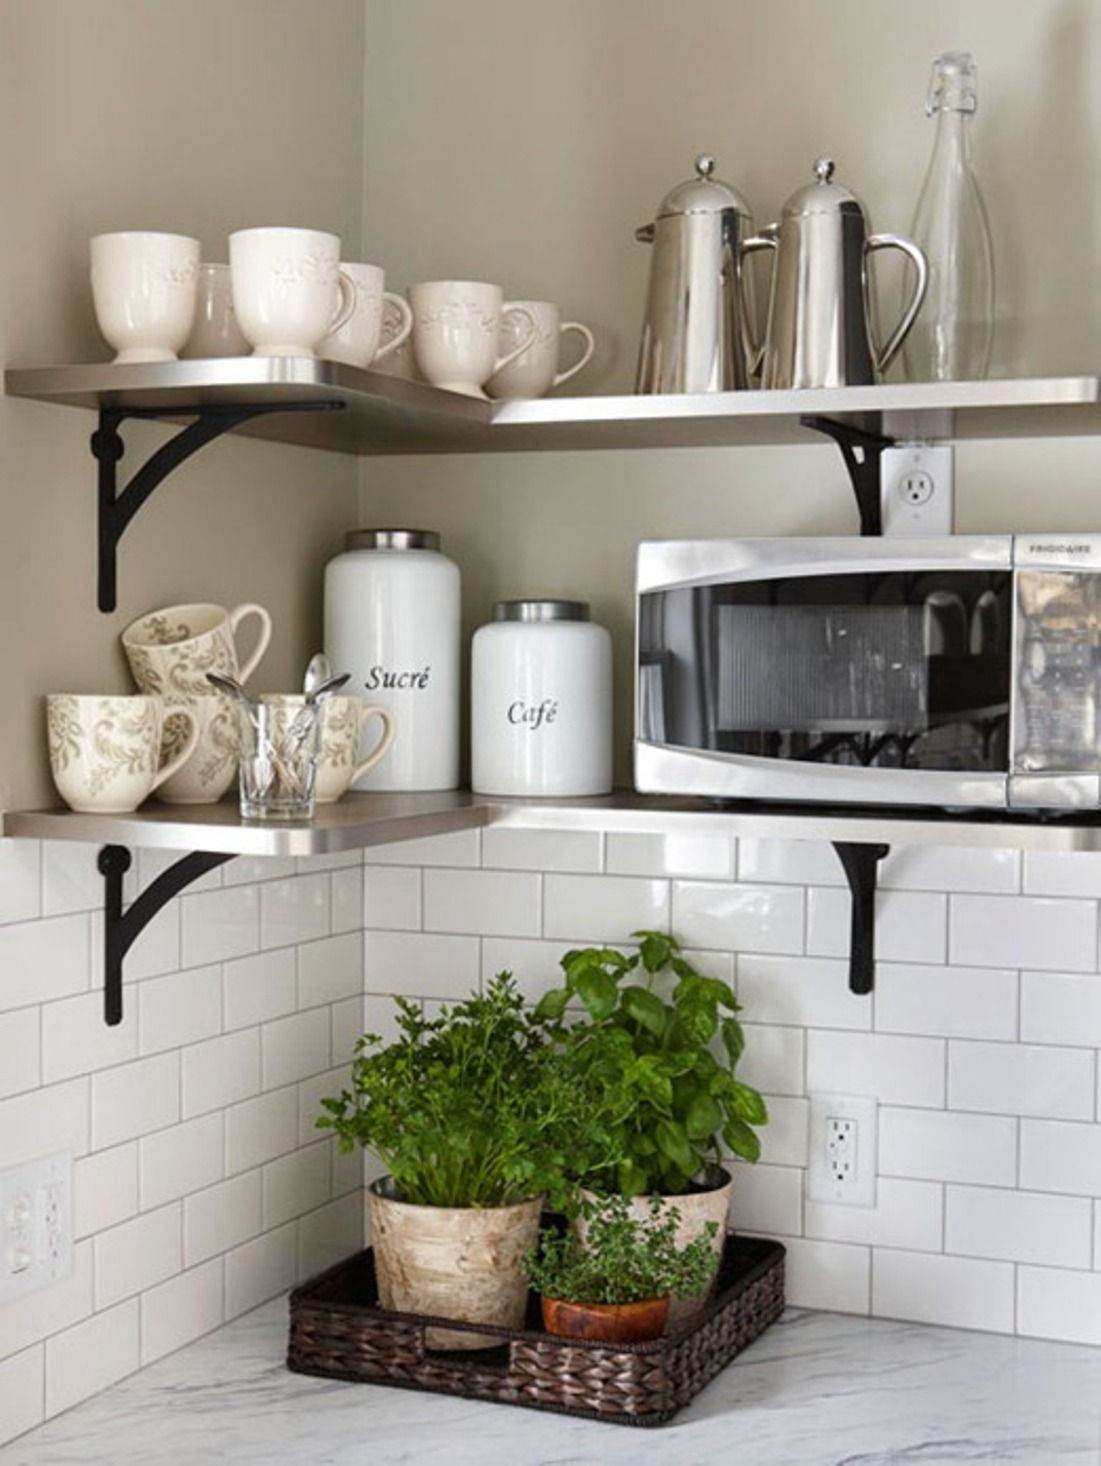 Exceptional Open Kitchen Shelving Tips And Inspiration: Contemporary Stainless Shelves  With Black Iron Brackets, White Subway Tile Backsplash. Plants In Basket  Tray